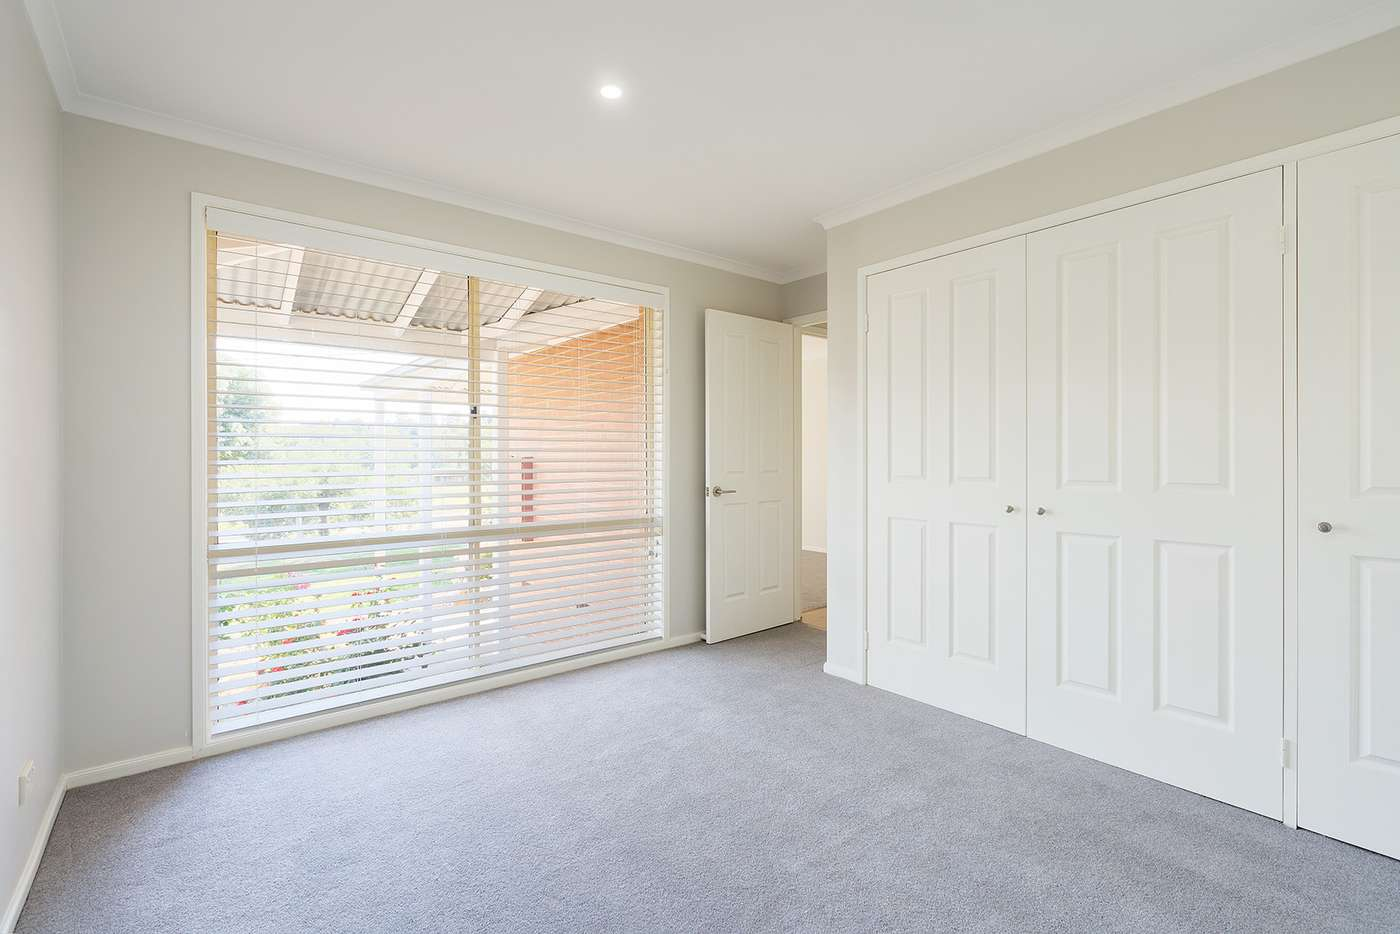 Sixth view of Homely house listing, 42 Fryers Street, Guildford VIC 3451